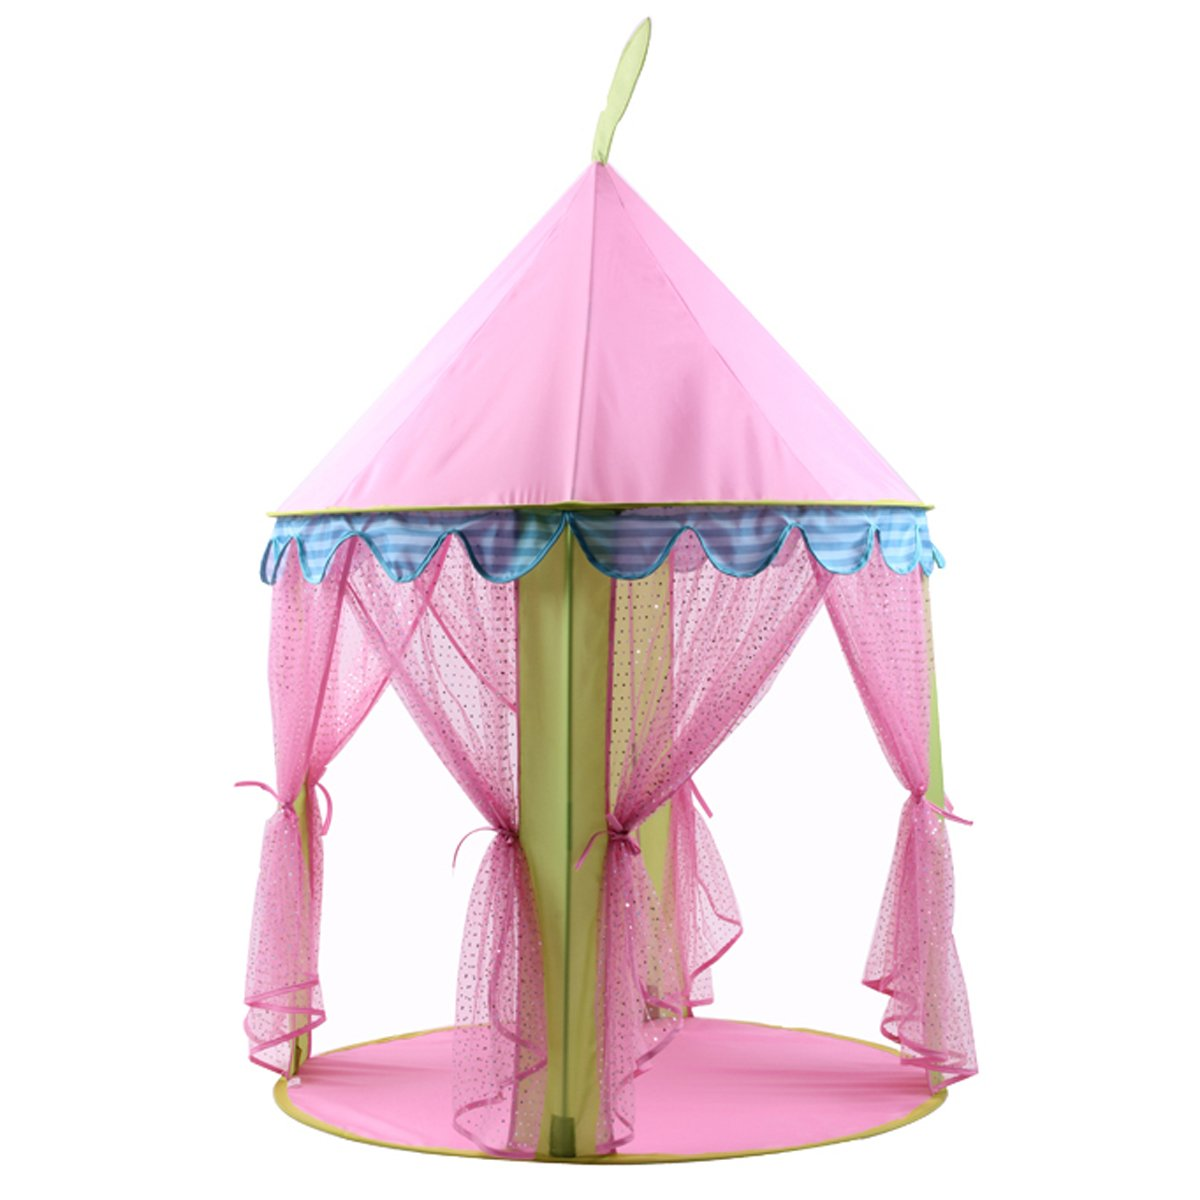 DreamU Princess Castle Play Tent House For Girls Indoor Outdoor Toy